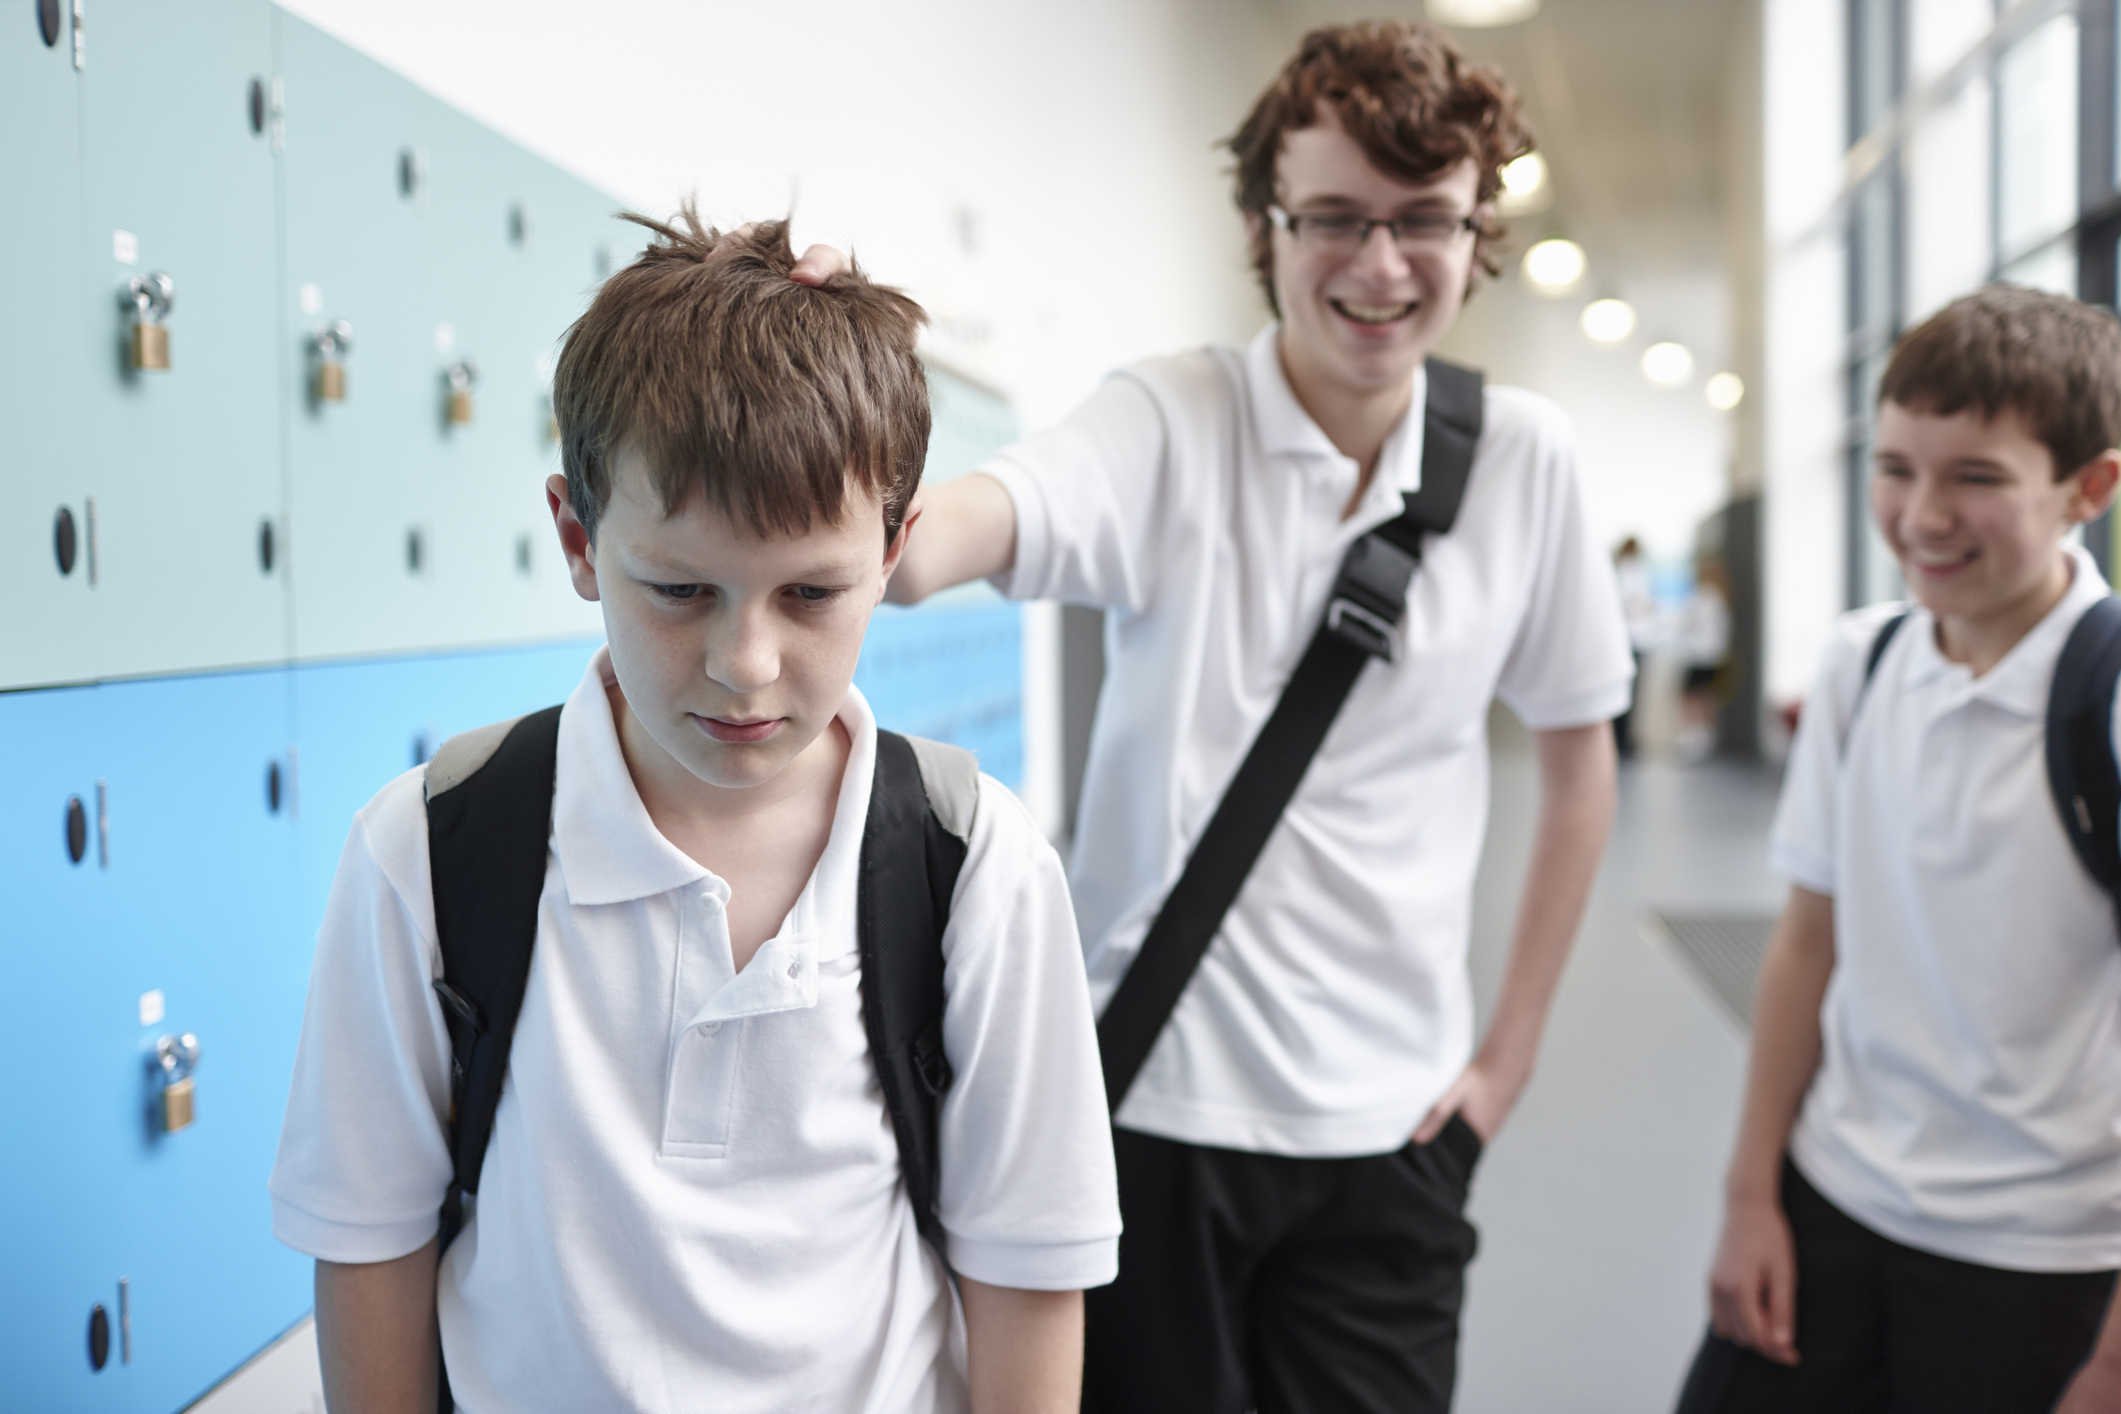 Schoolboy being bullied in school corridor.